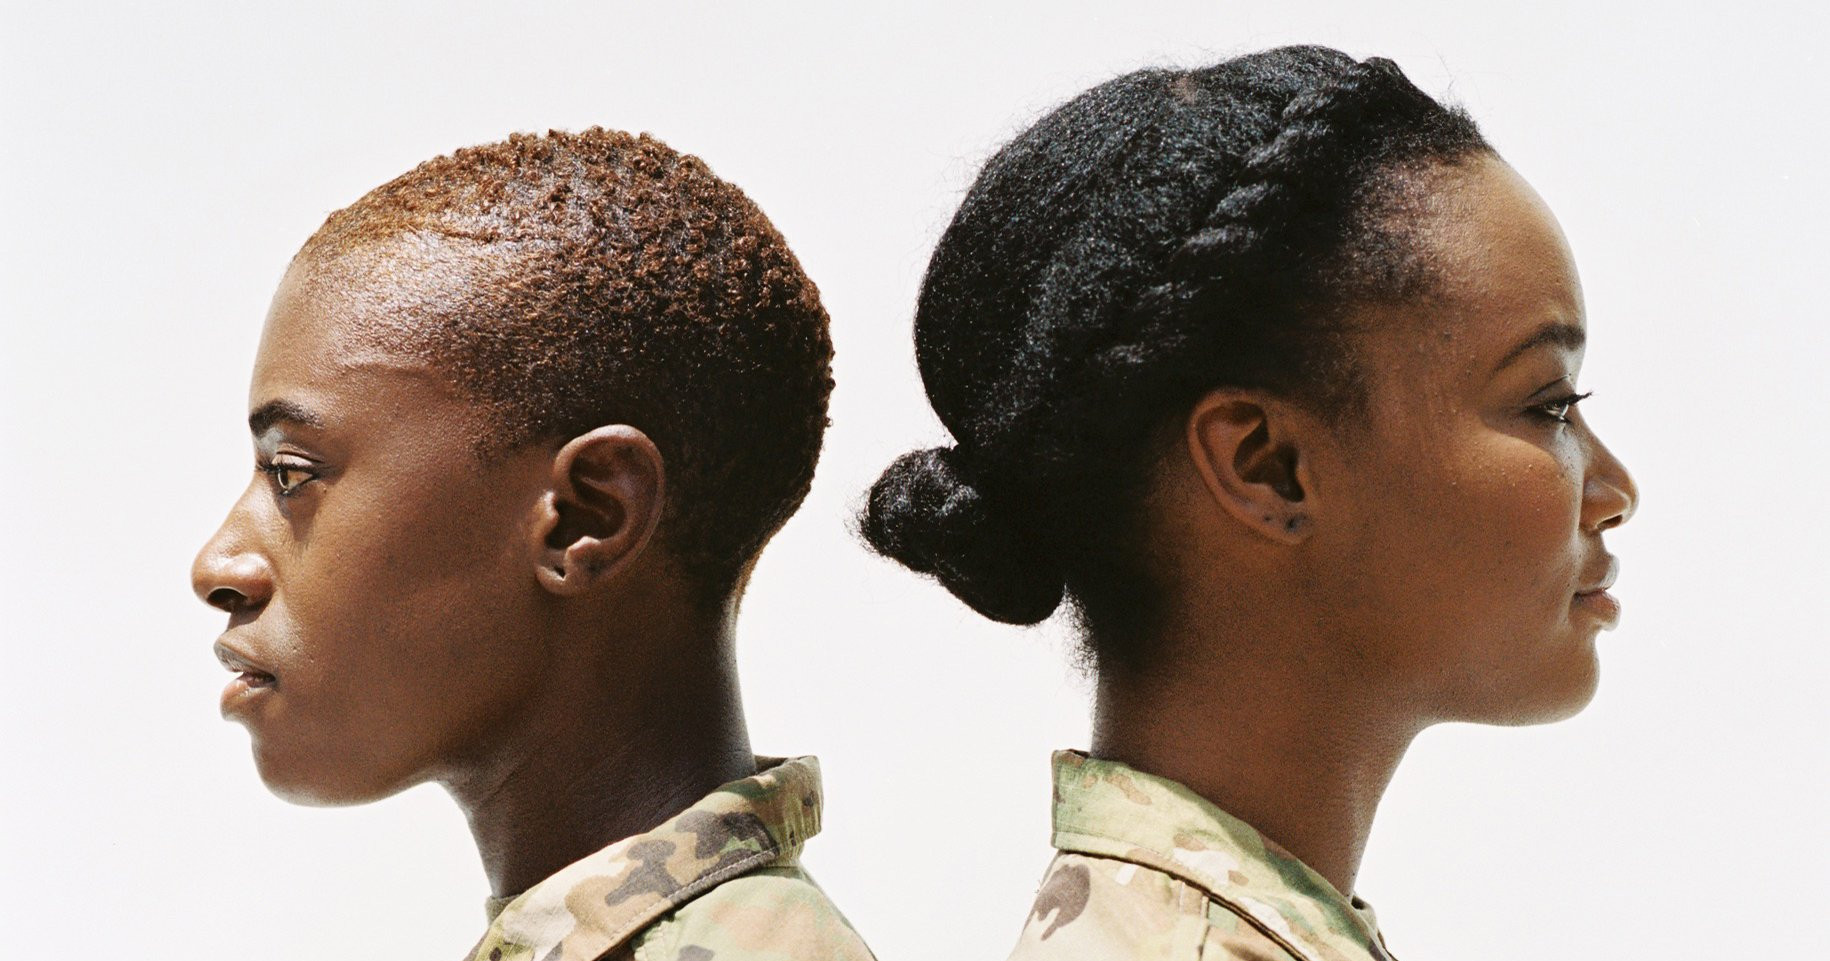 Female Navy Haircuts  US Navy Finally Alters Hair Policy For Black Women Sailors